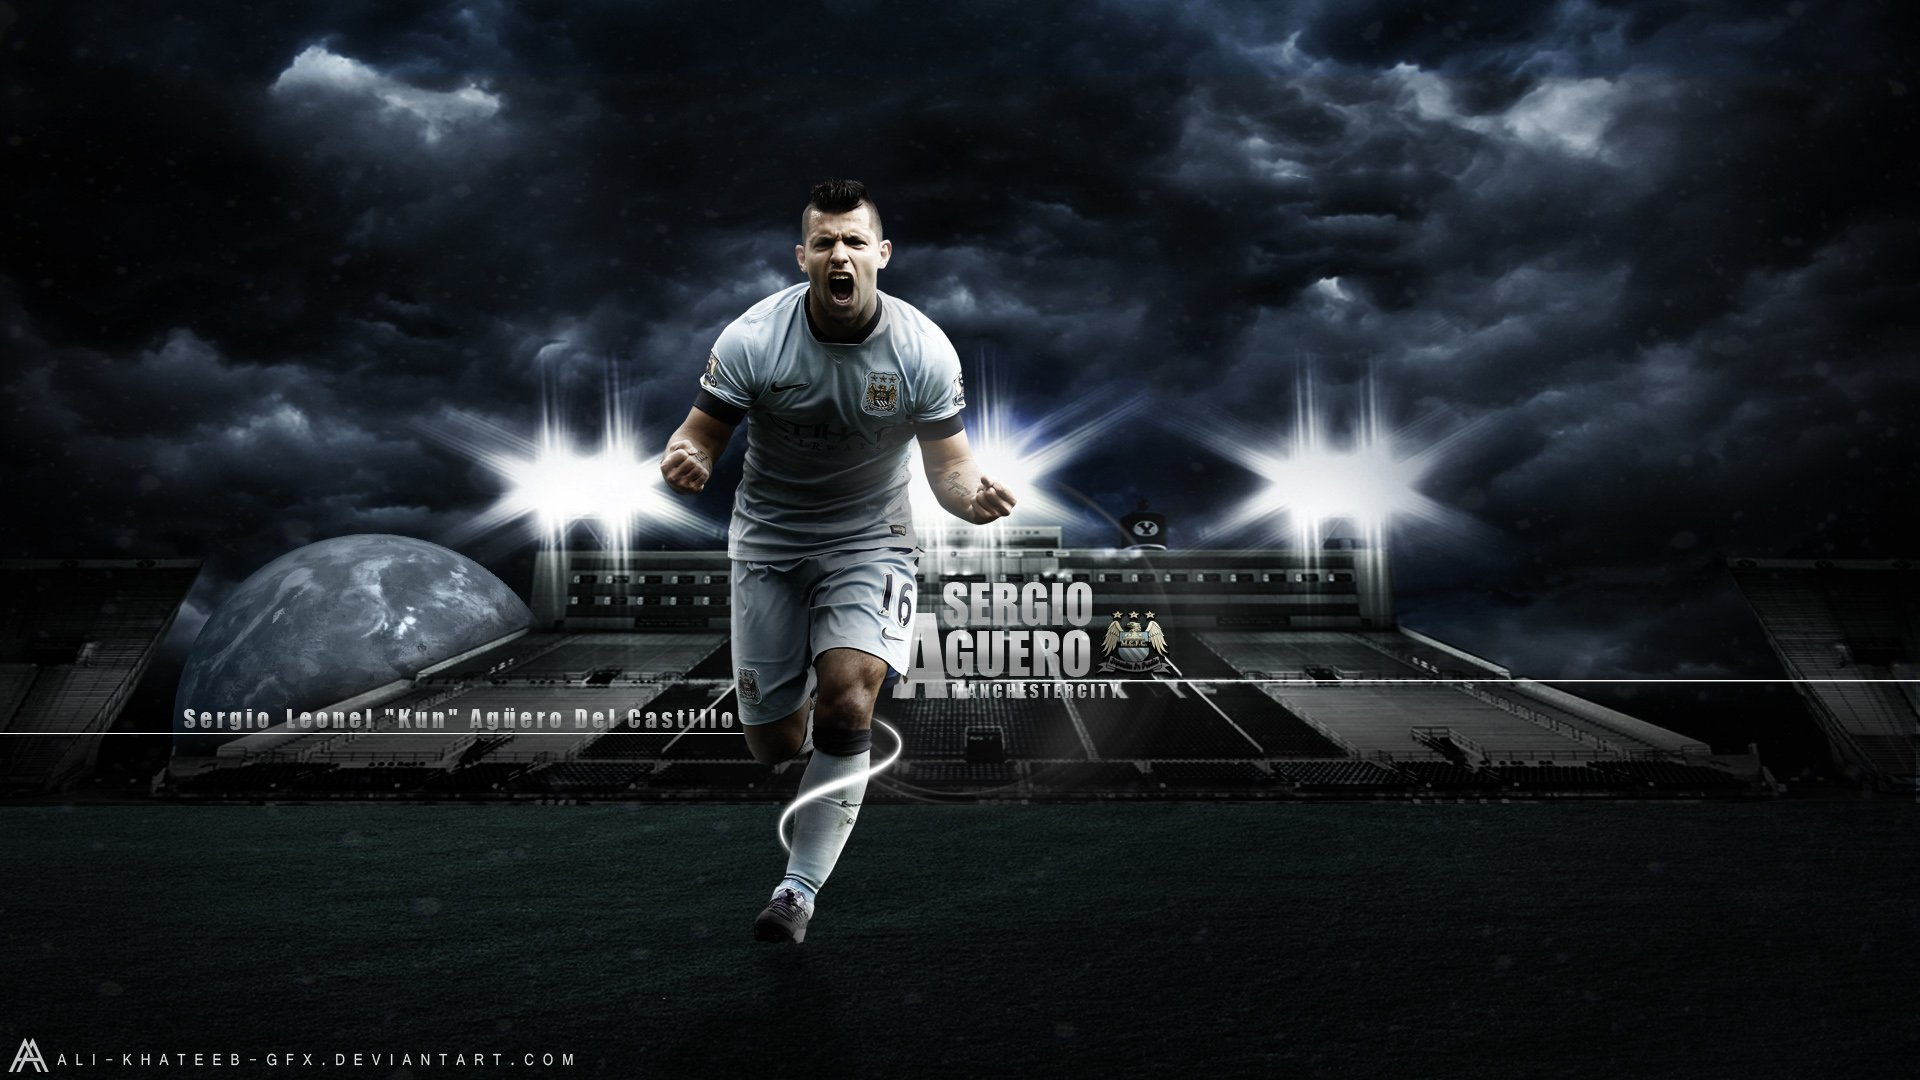 Free Download Download Sergio Aguero Manchester City Player Hd Wallpaper Search 1920x1080 For Your Desktop Mobile Tablet Explore 50 Manchester City Hd Wallpapers Manchester United Wallpaper 2015 Manchester United